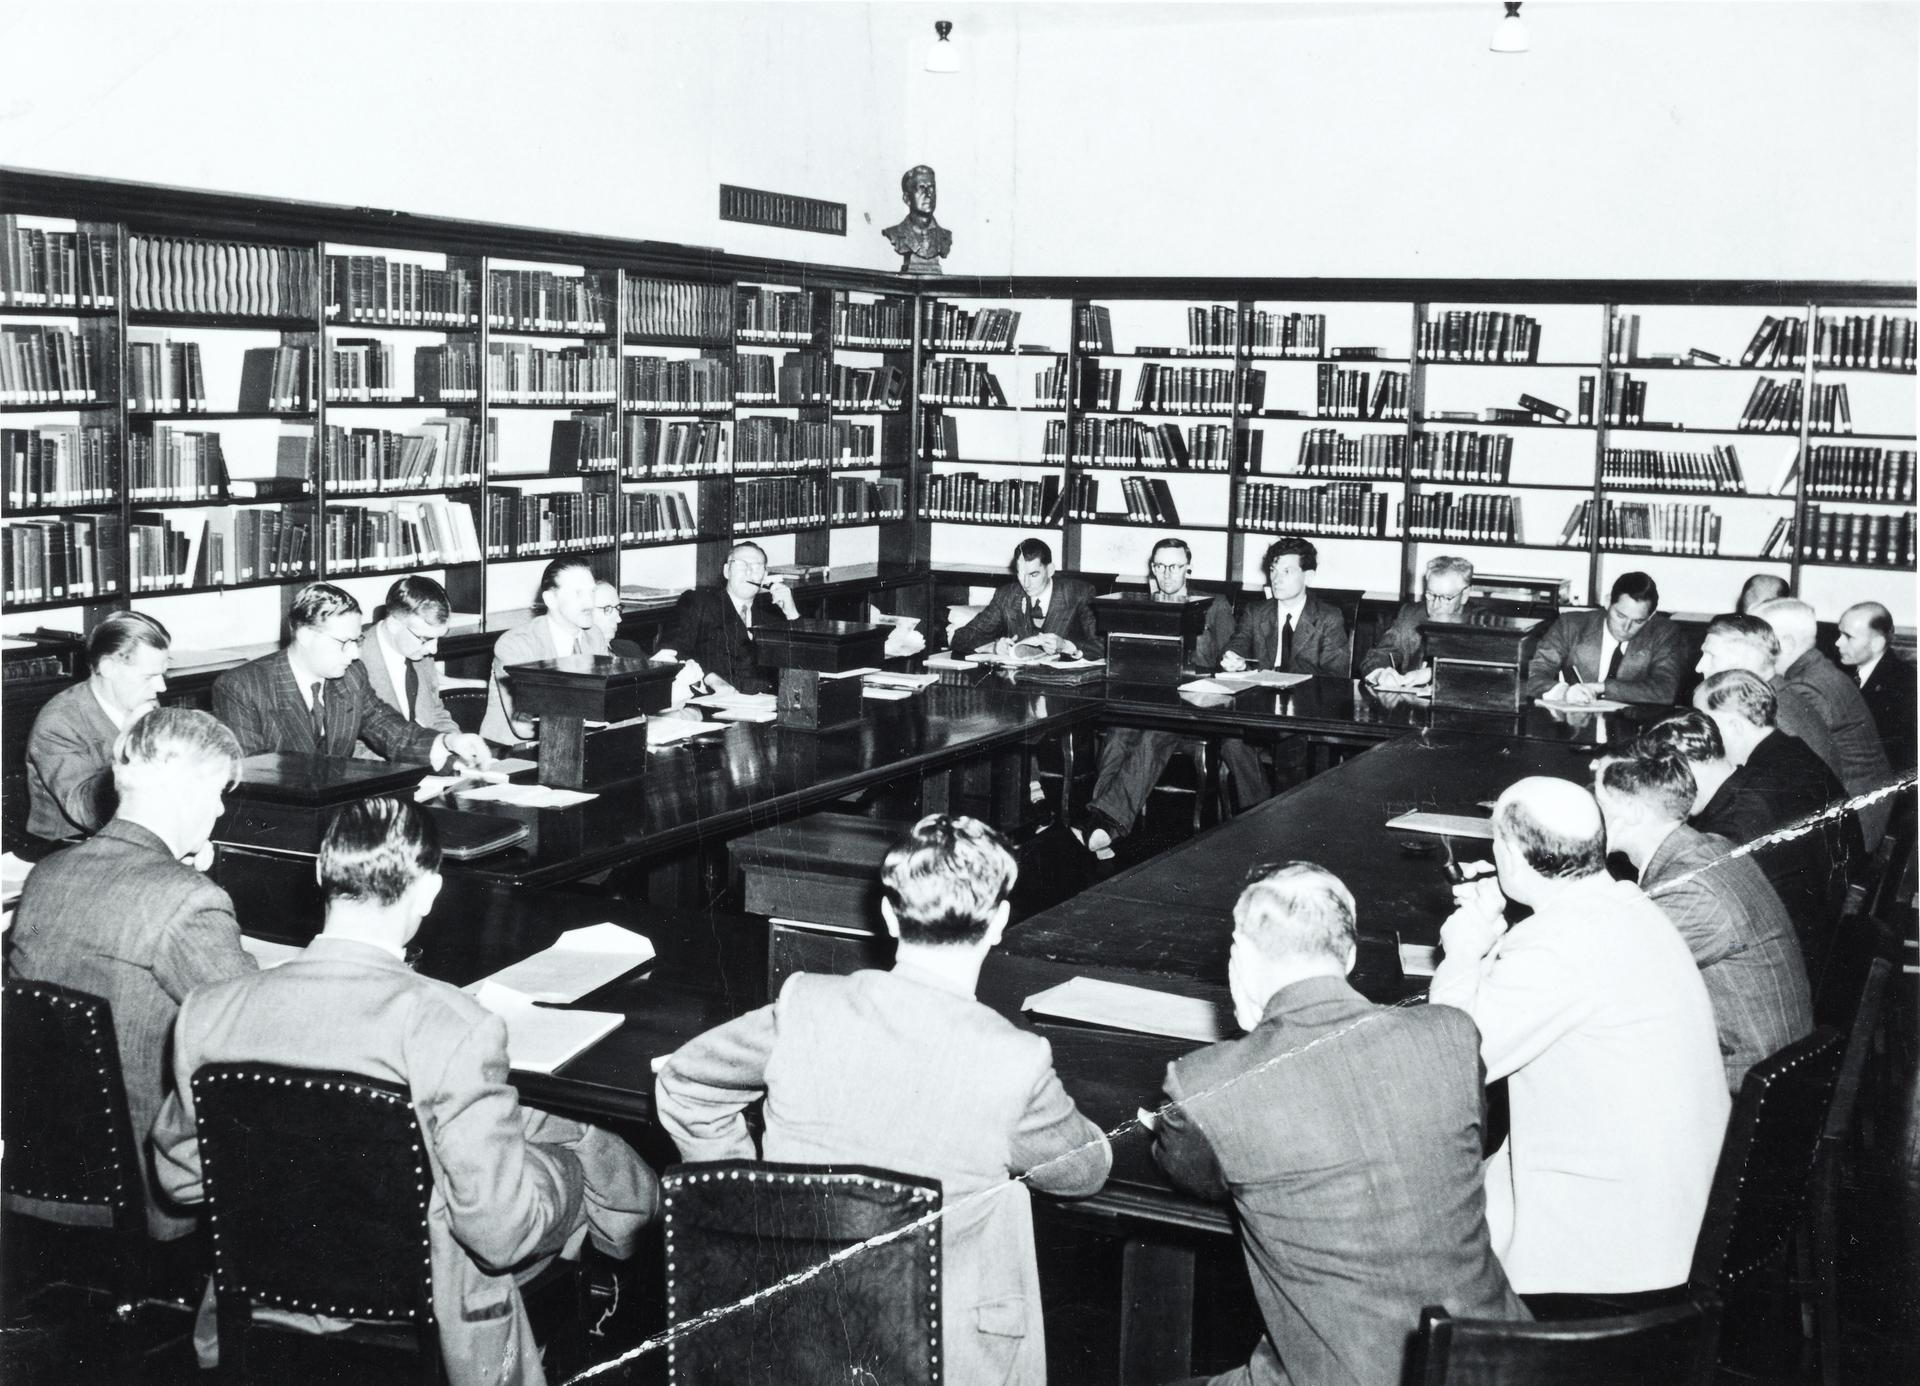 Meeting in library at Canberra University College, 1948